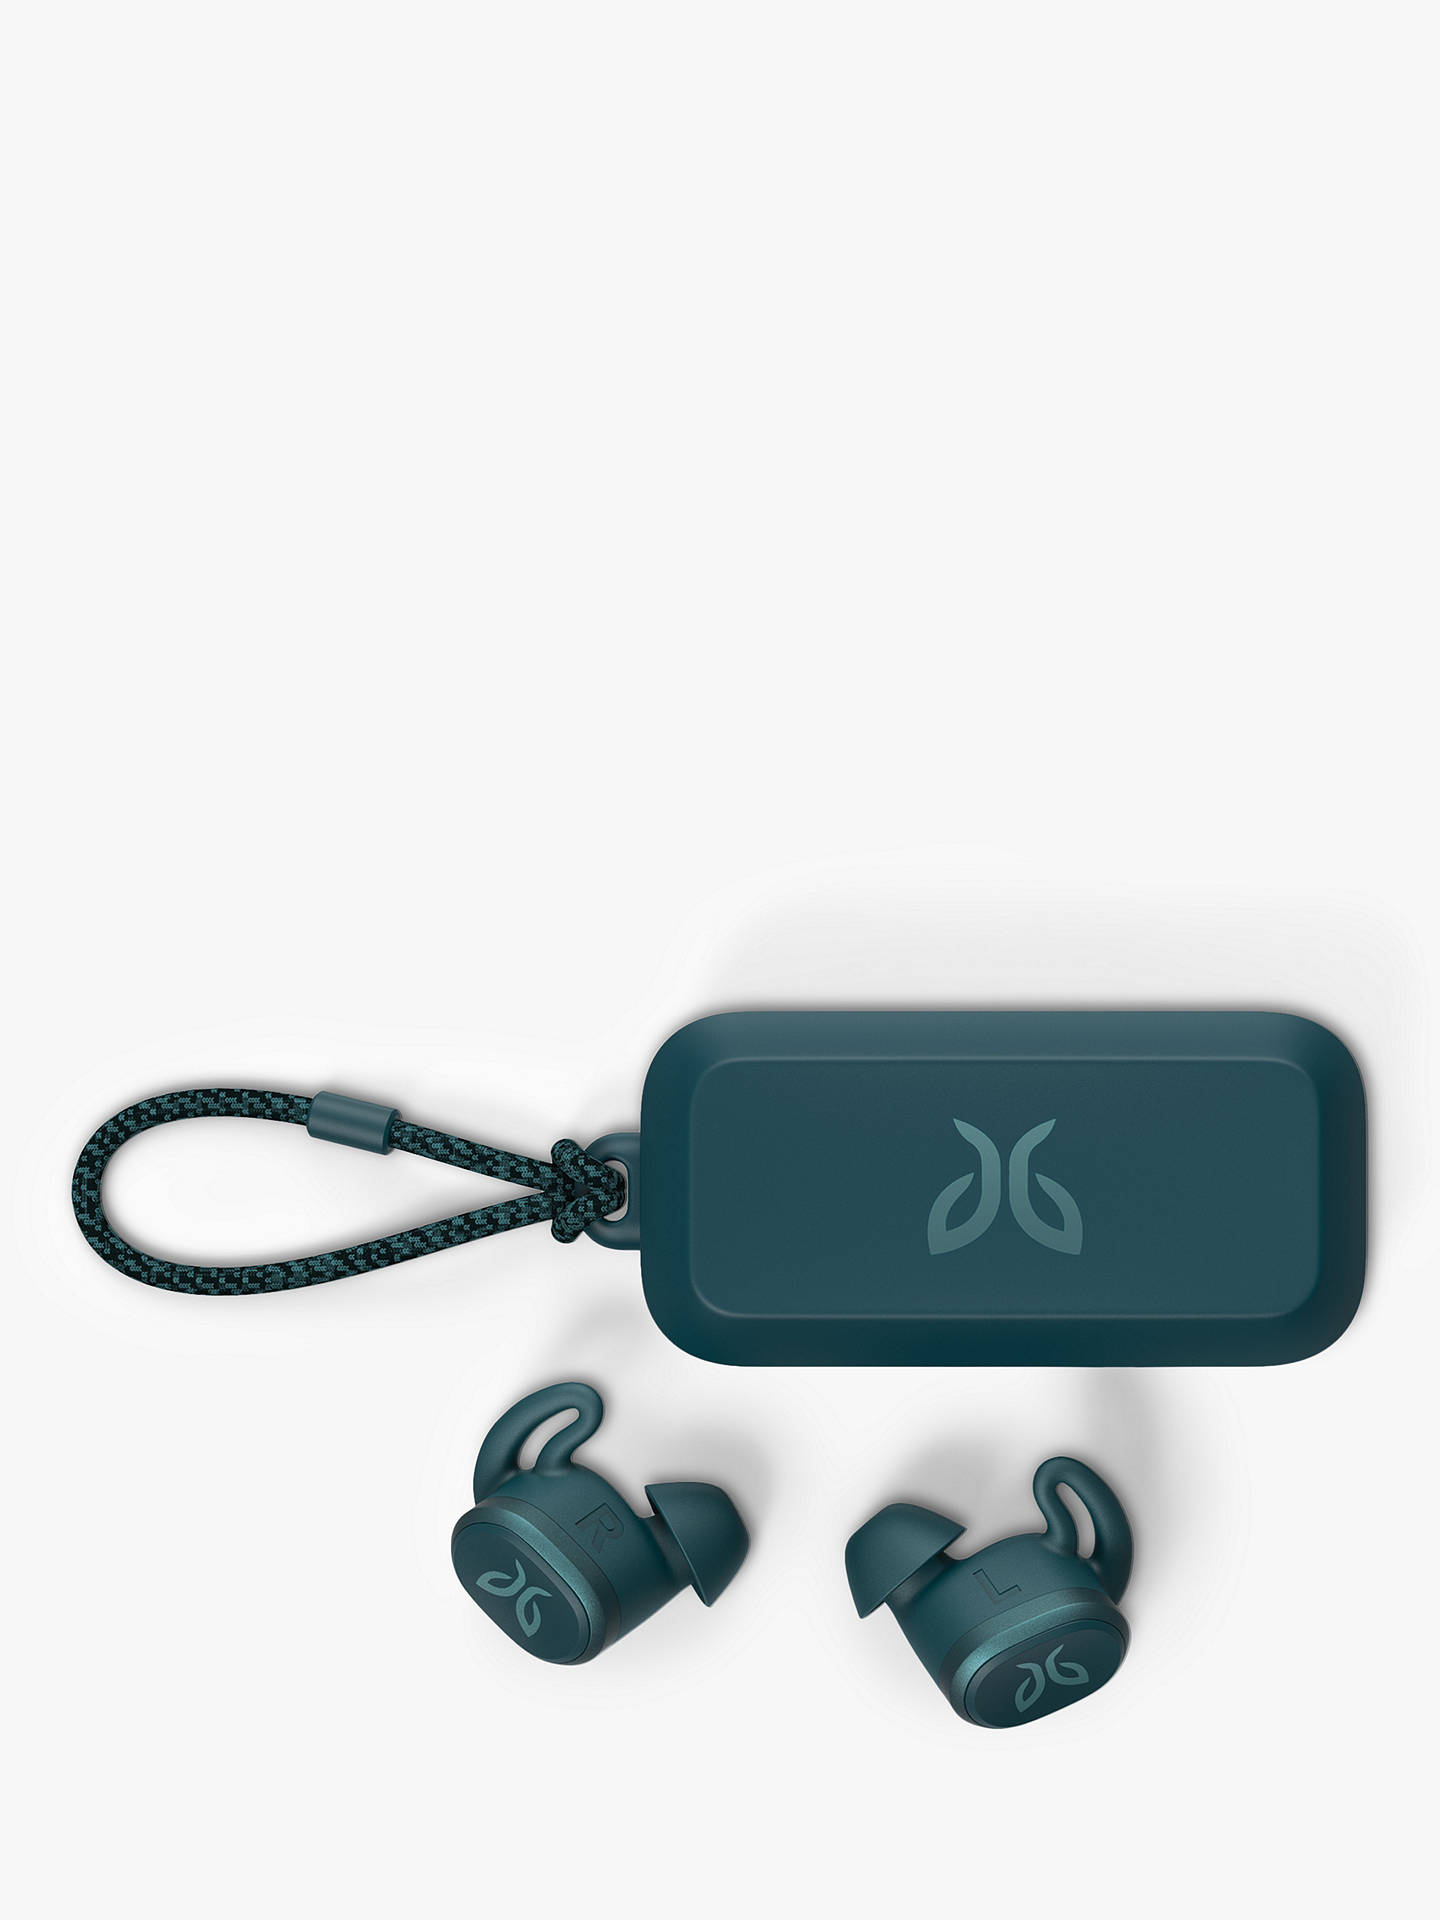 Buy Jaybird Vista True Wireless Waterproof Bluetooth In-Ear Sport Headphones with Mic/Remote, Mineral Blue Online at johnlewis.com